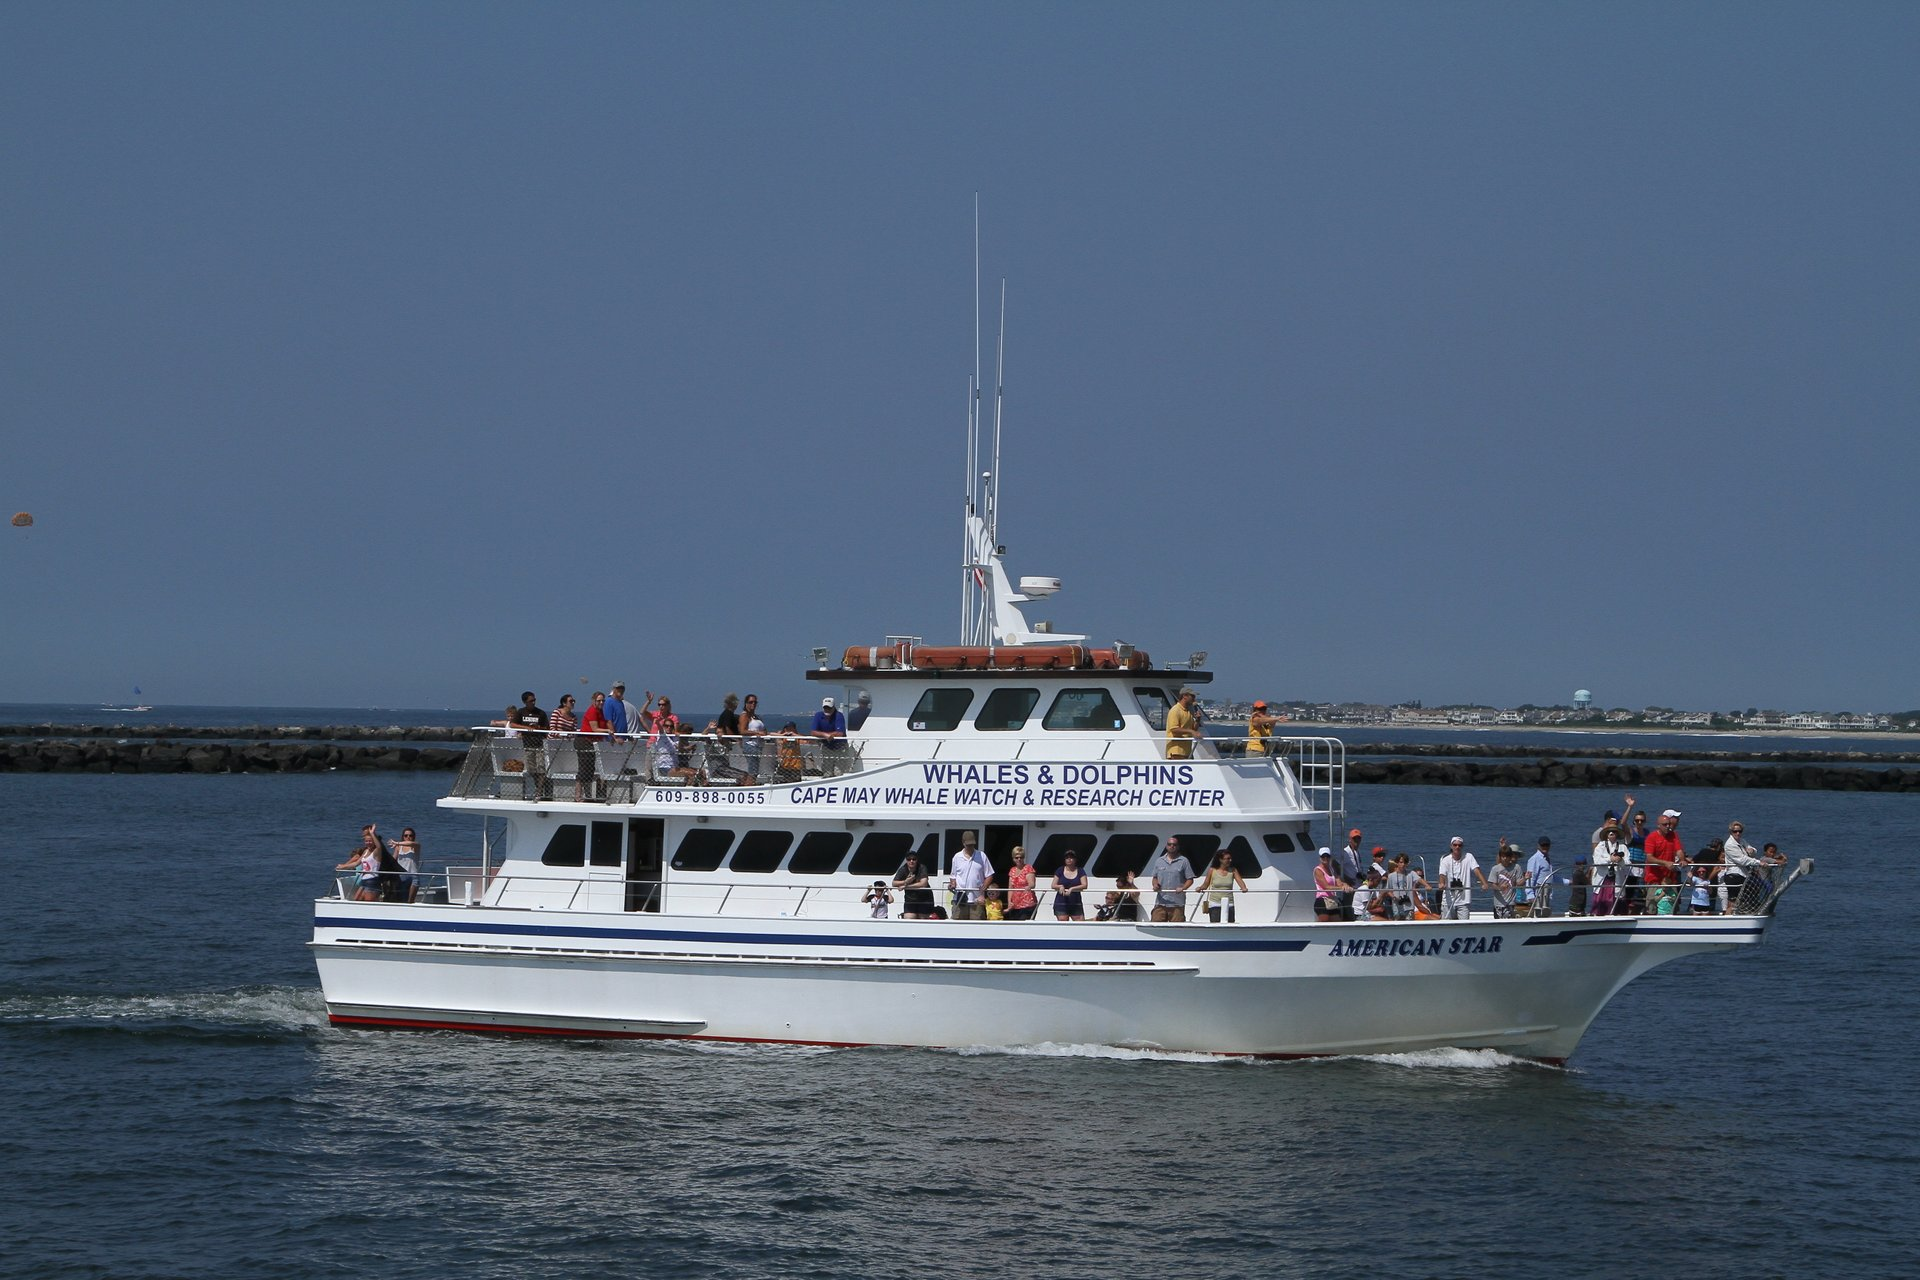 Dolphin & Whale Watching in New Jersey - Best Season 2020